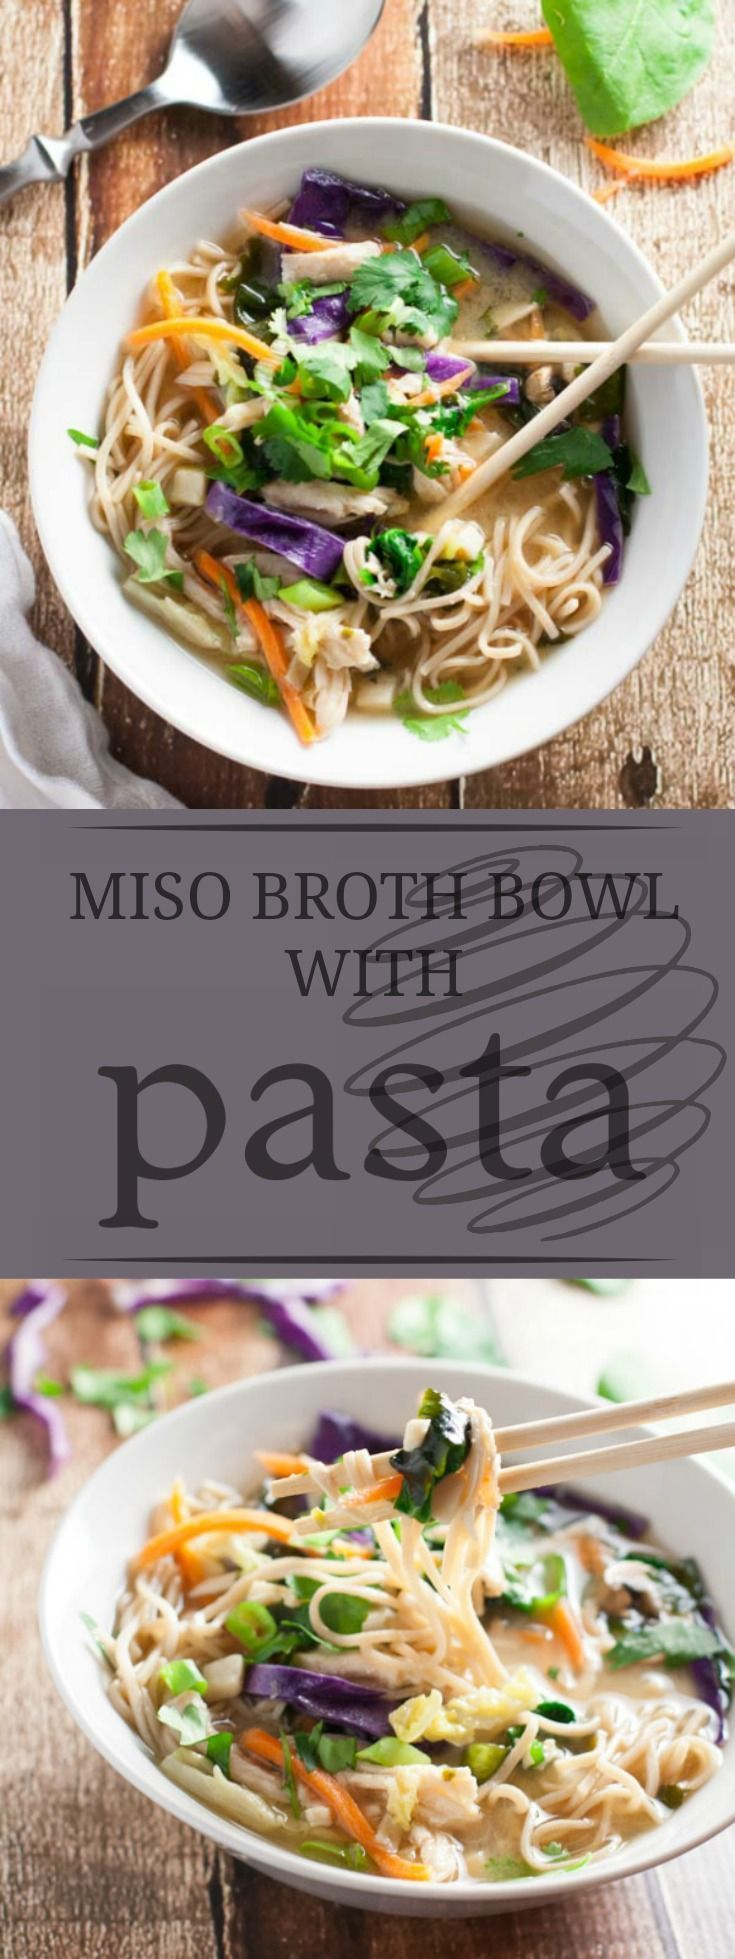 Miso Broth Bowl with Whole Wheat Noodles | A classic Asian dish, this miso broth bowl is sure to satisfy everyone. Perfect for the wintertime! | http://WorldofPastabilities.com